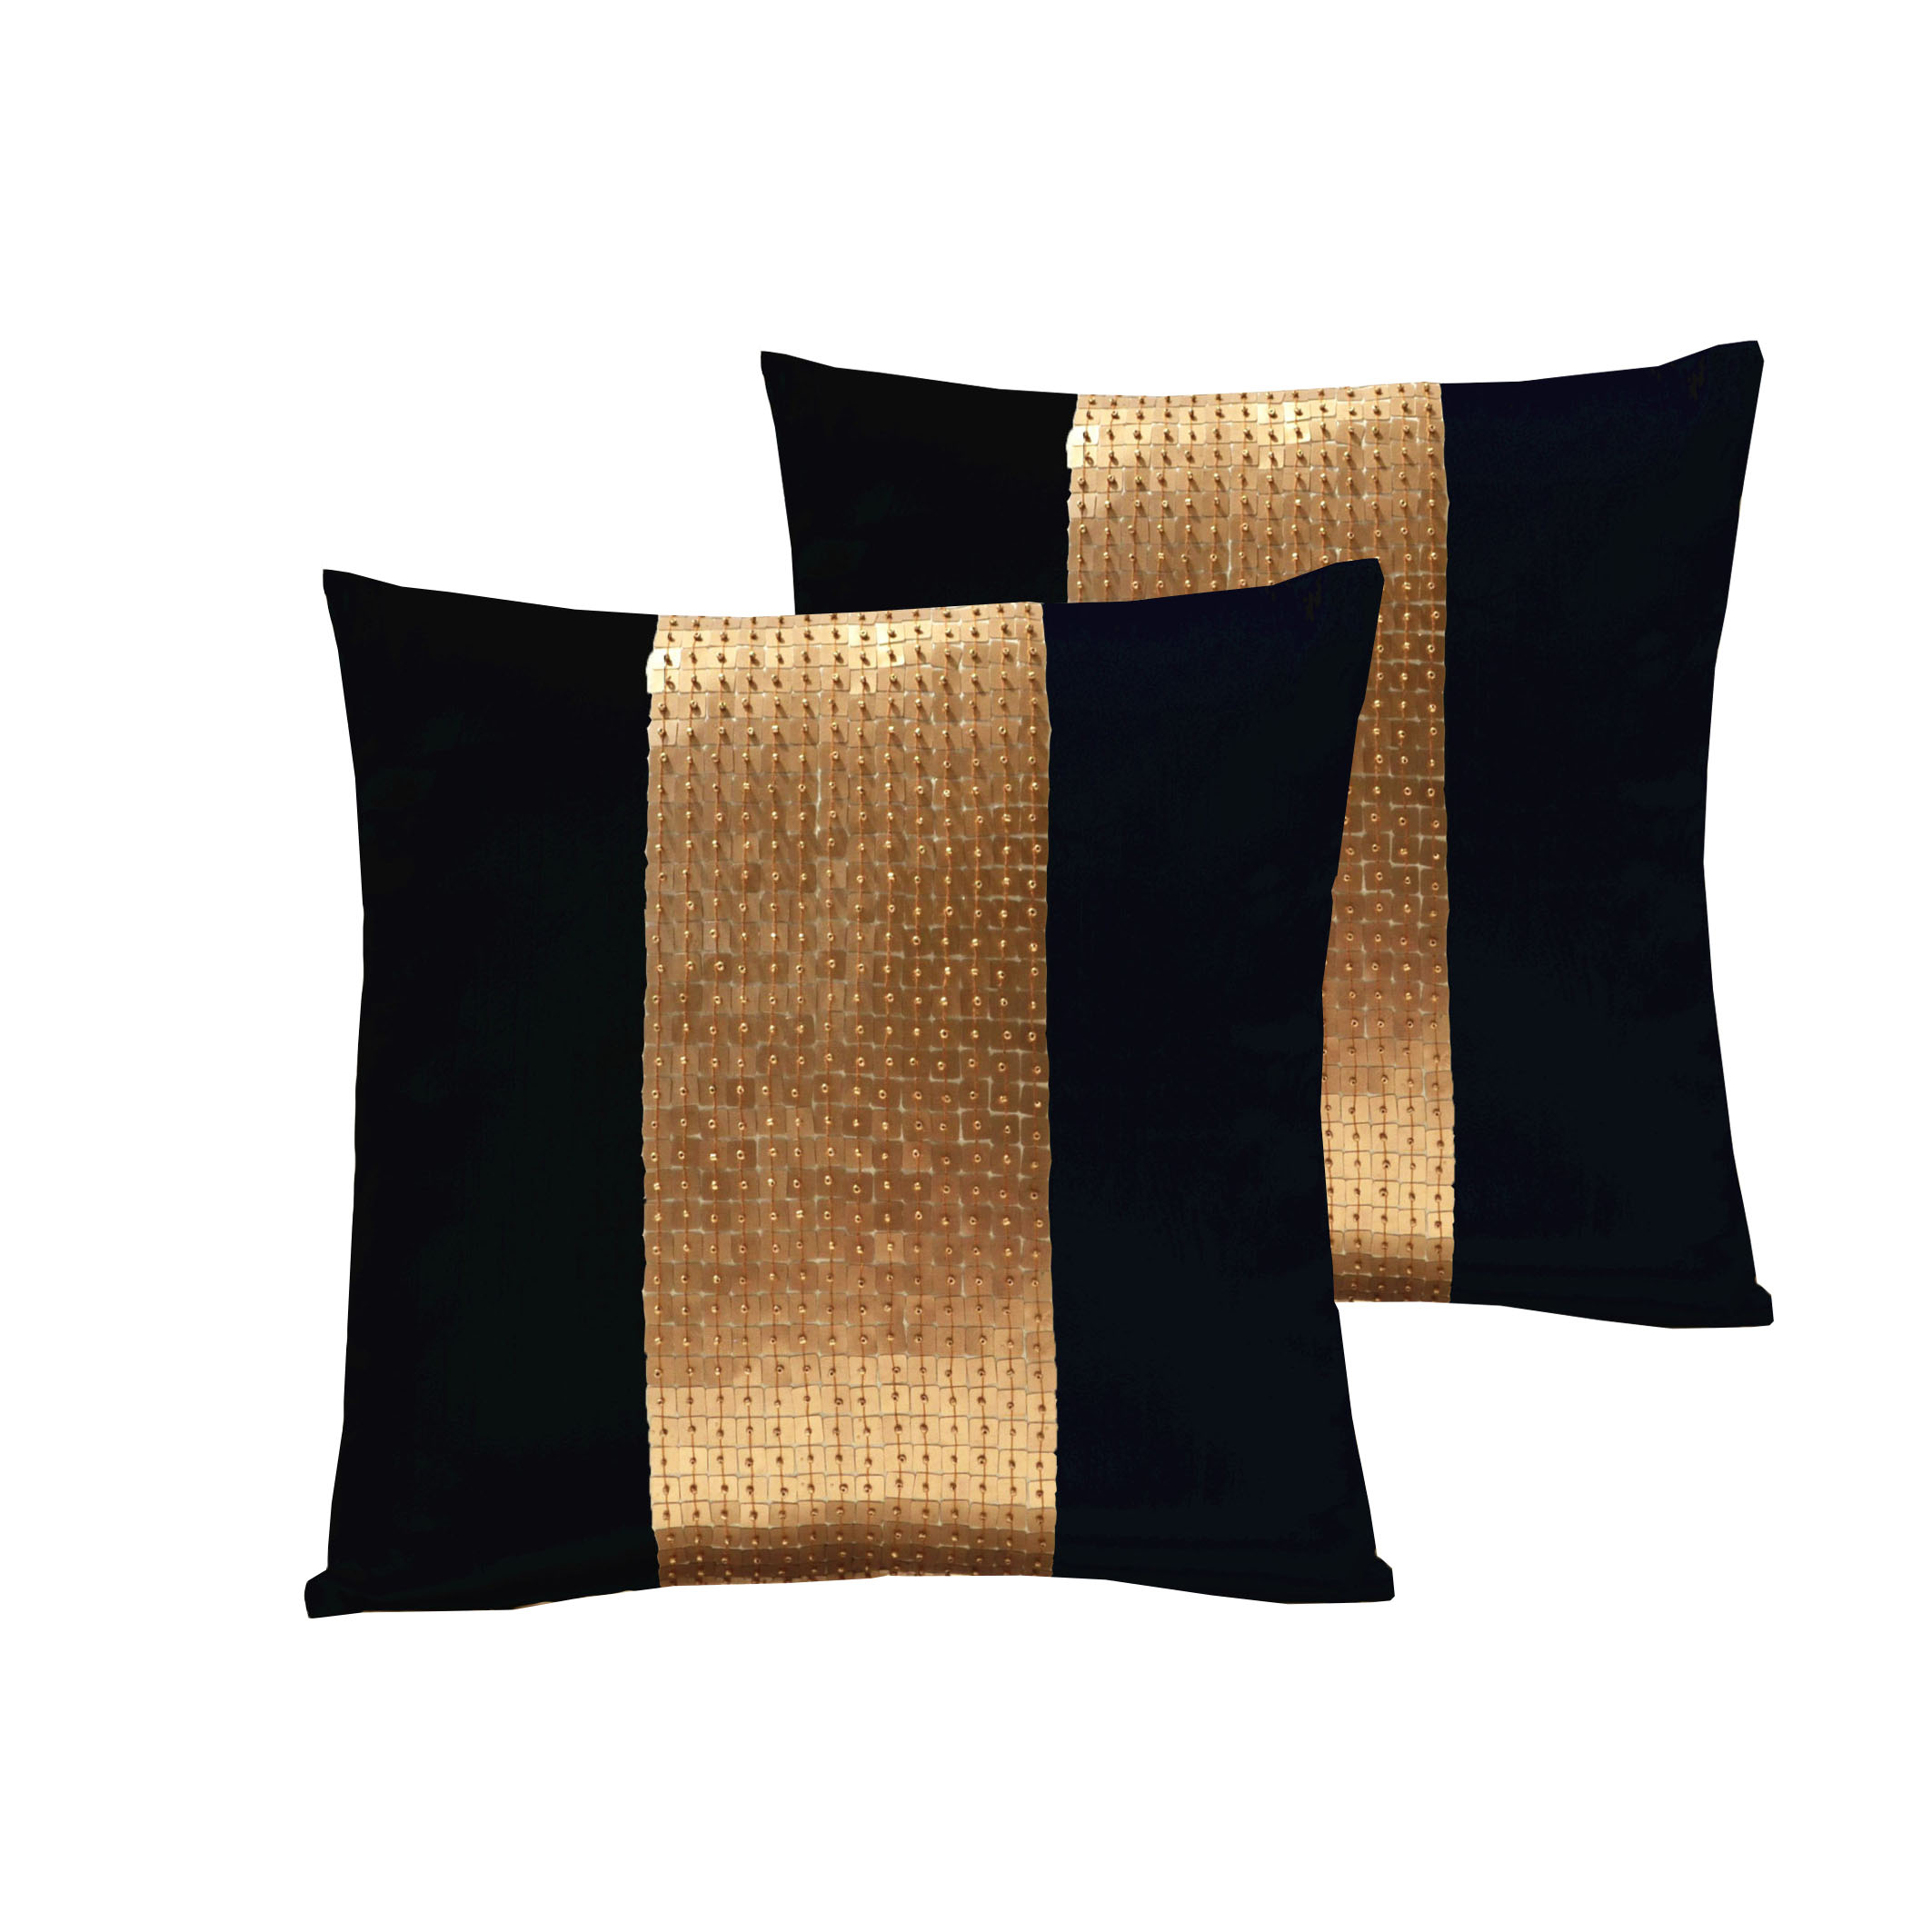 Black cushion cover